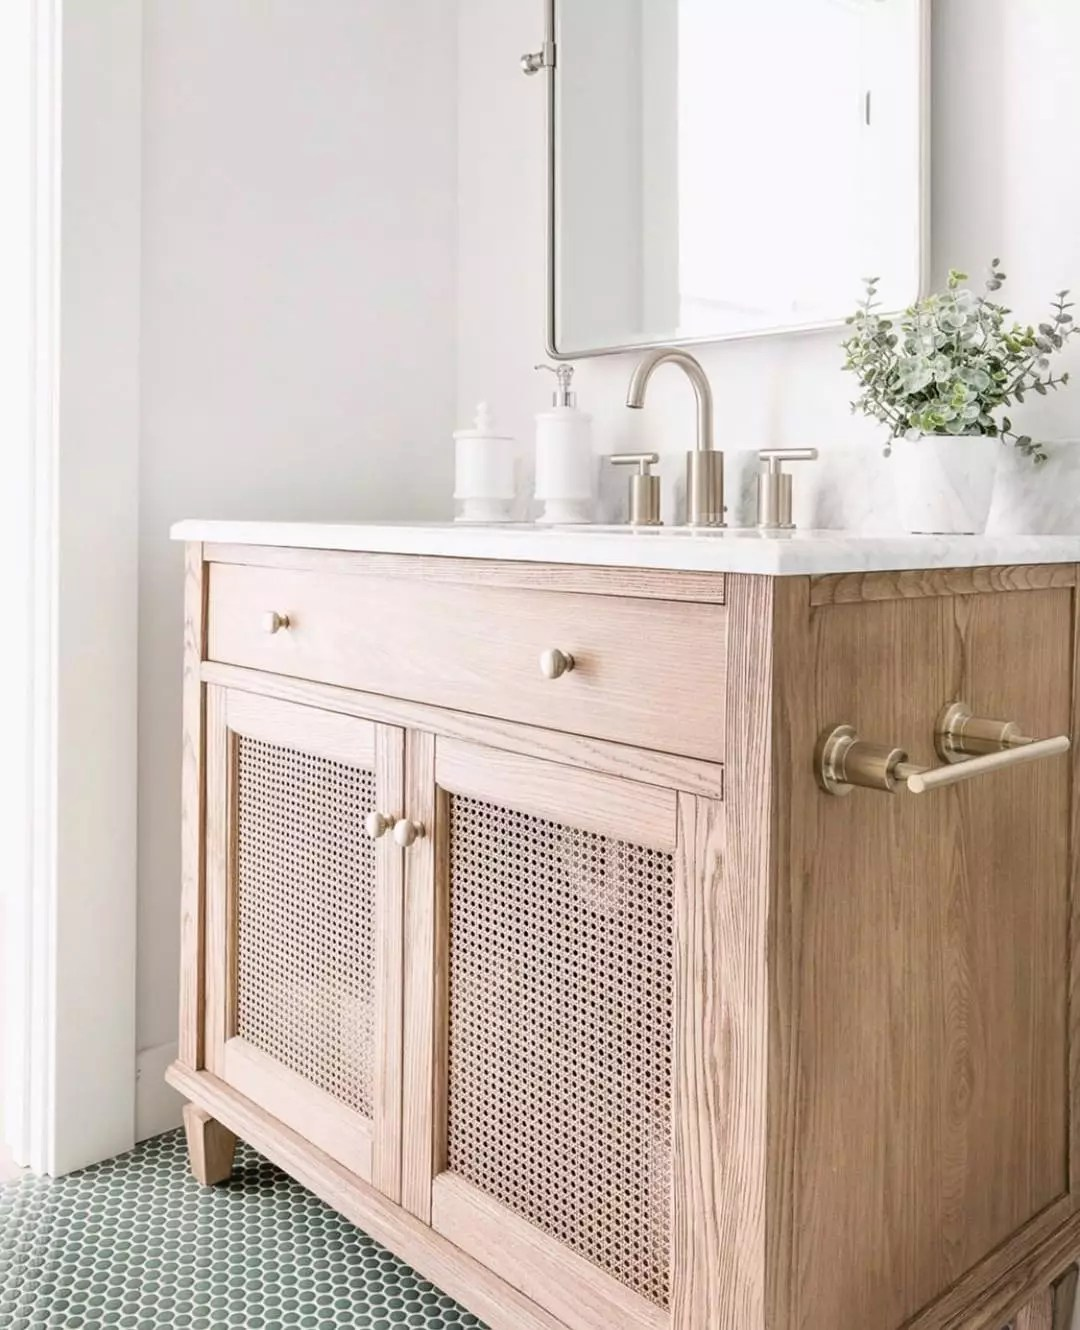 Sustainable bathroom vanity. Photo by Instagram user @sustainable9